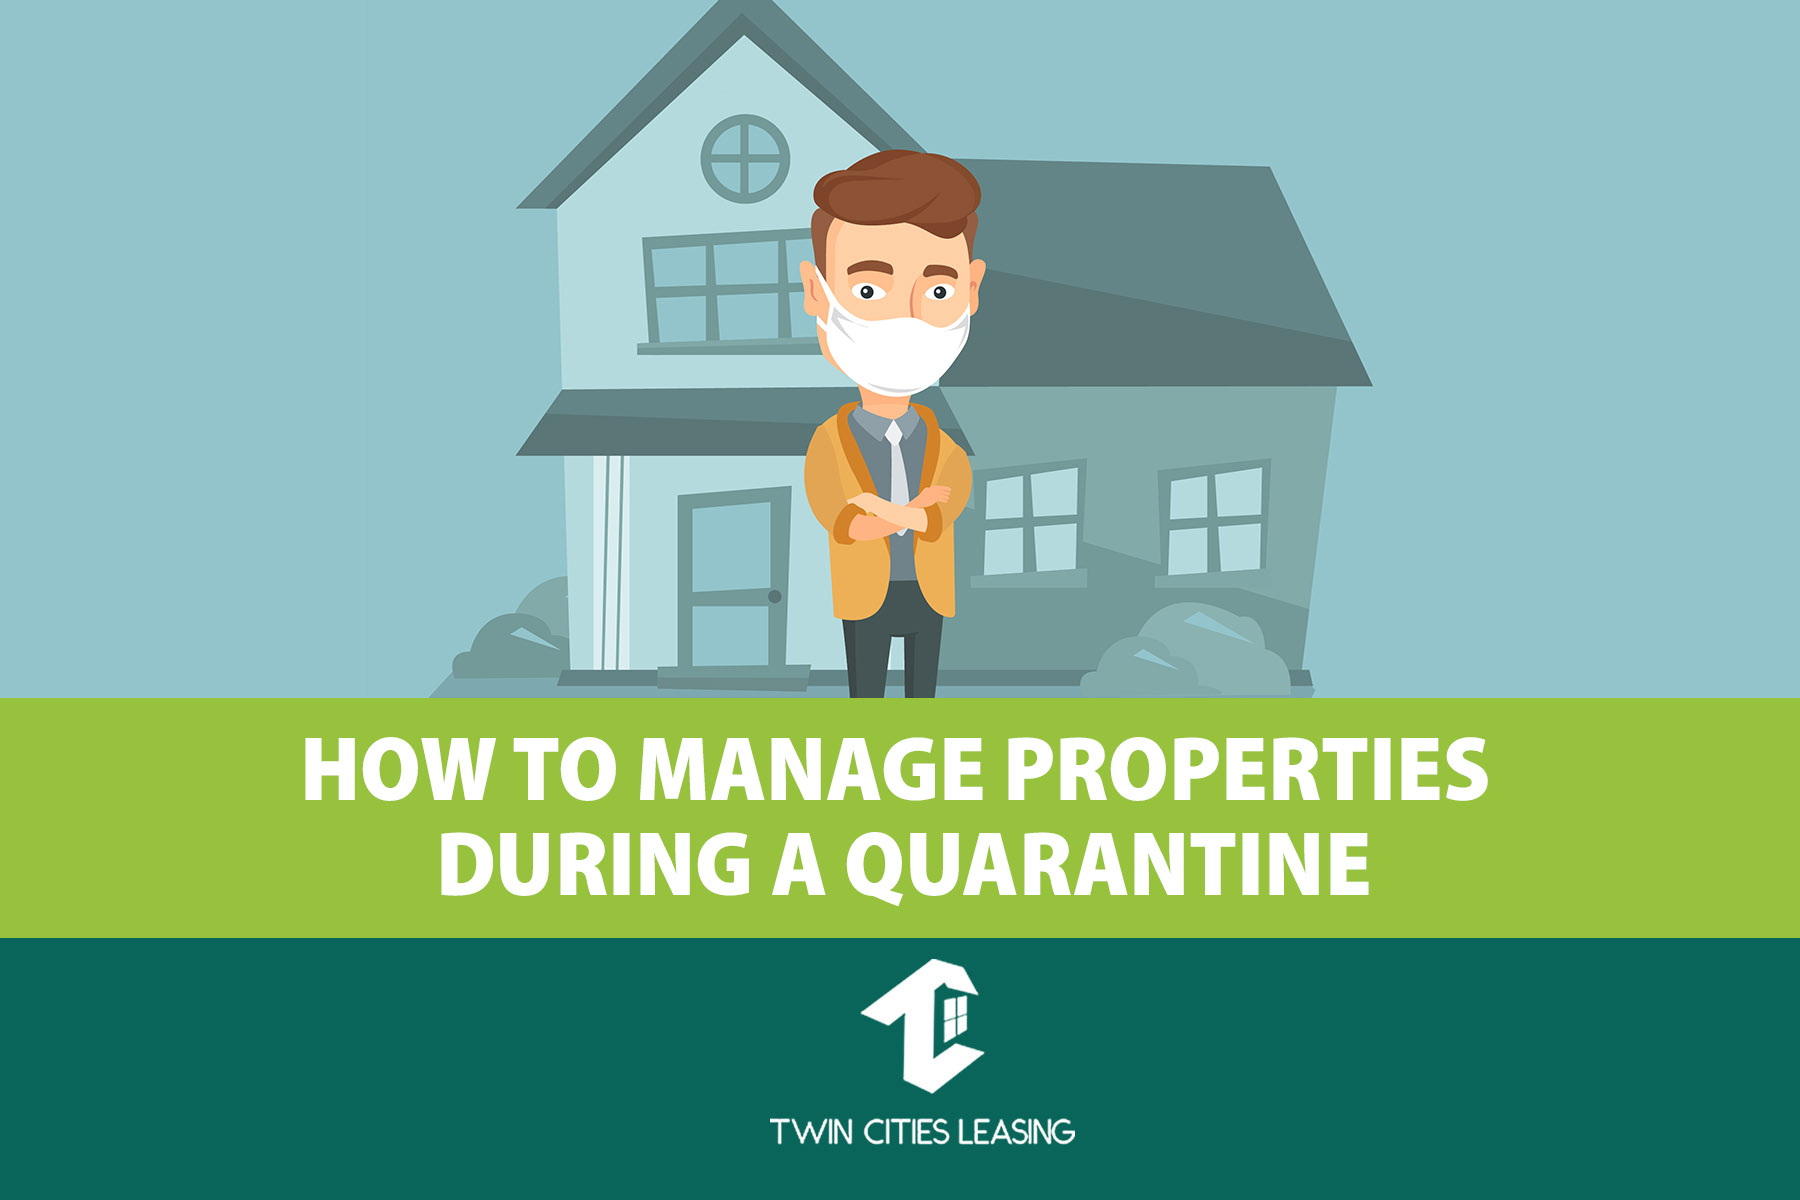 How to Manage Properties During a Quarantine